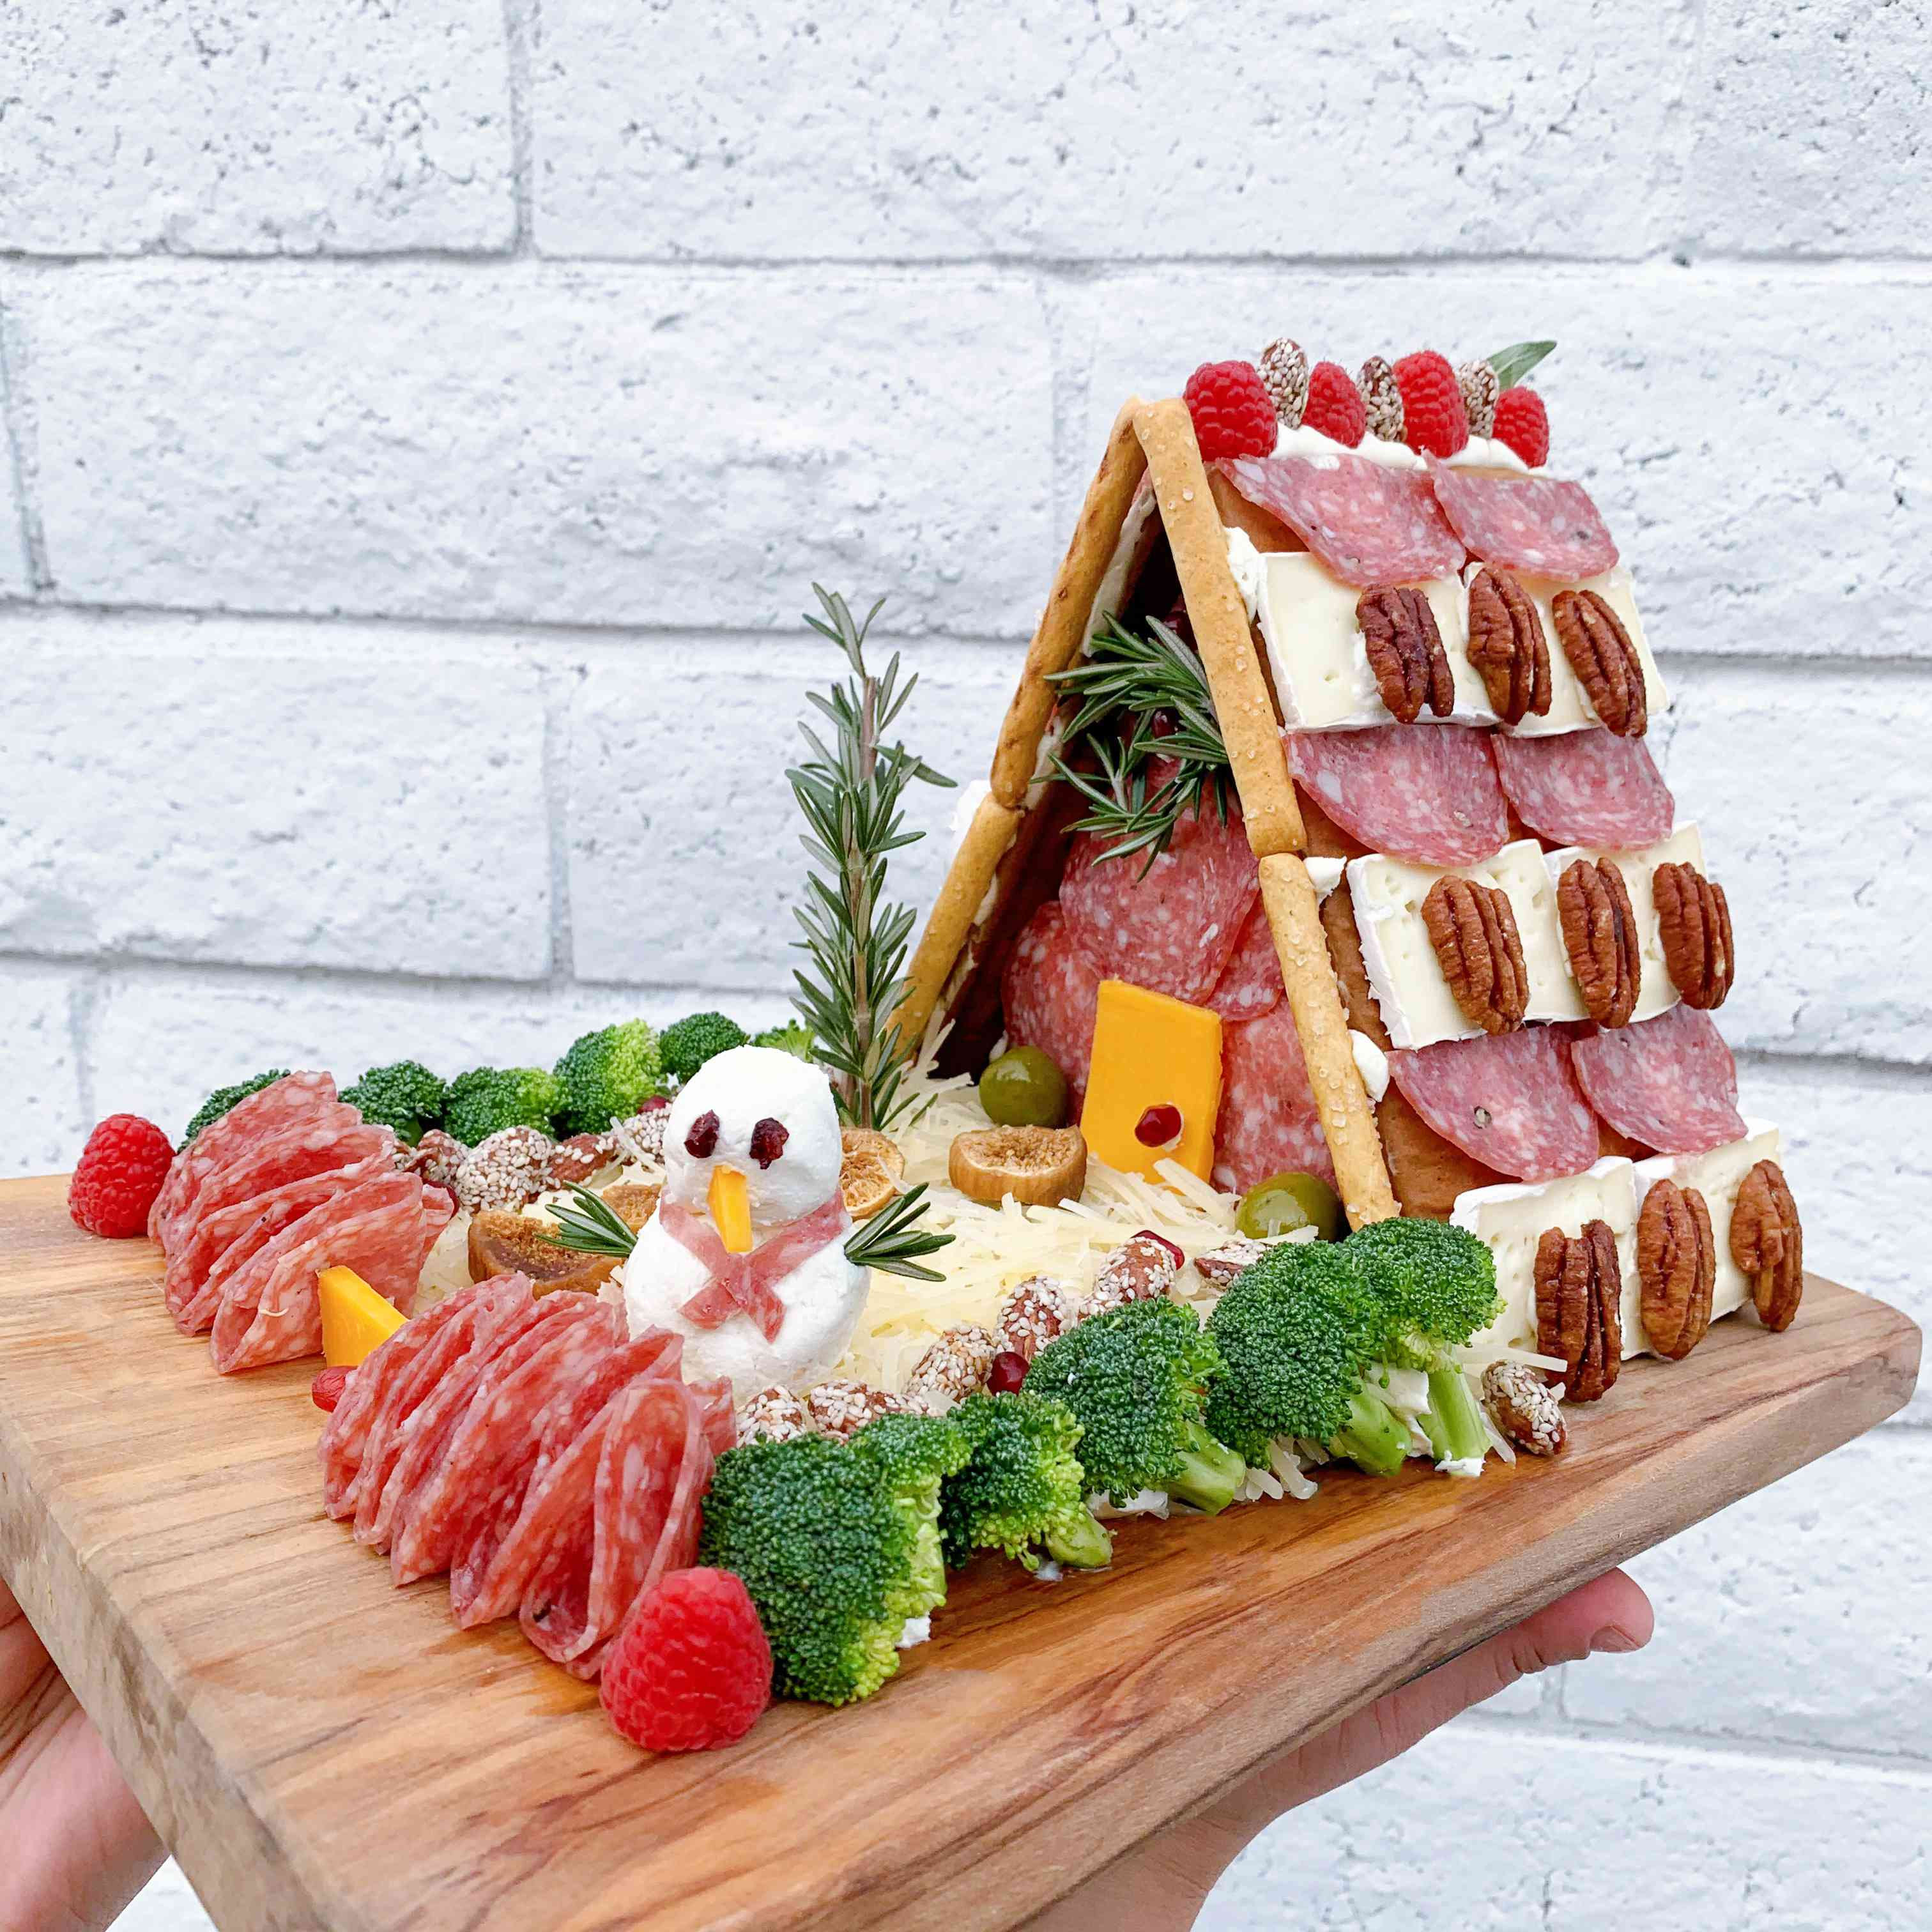 A-frame charcuterie chalet with broccoli lane and snowman